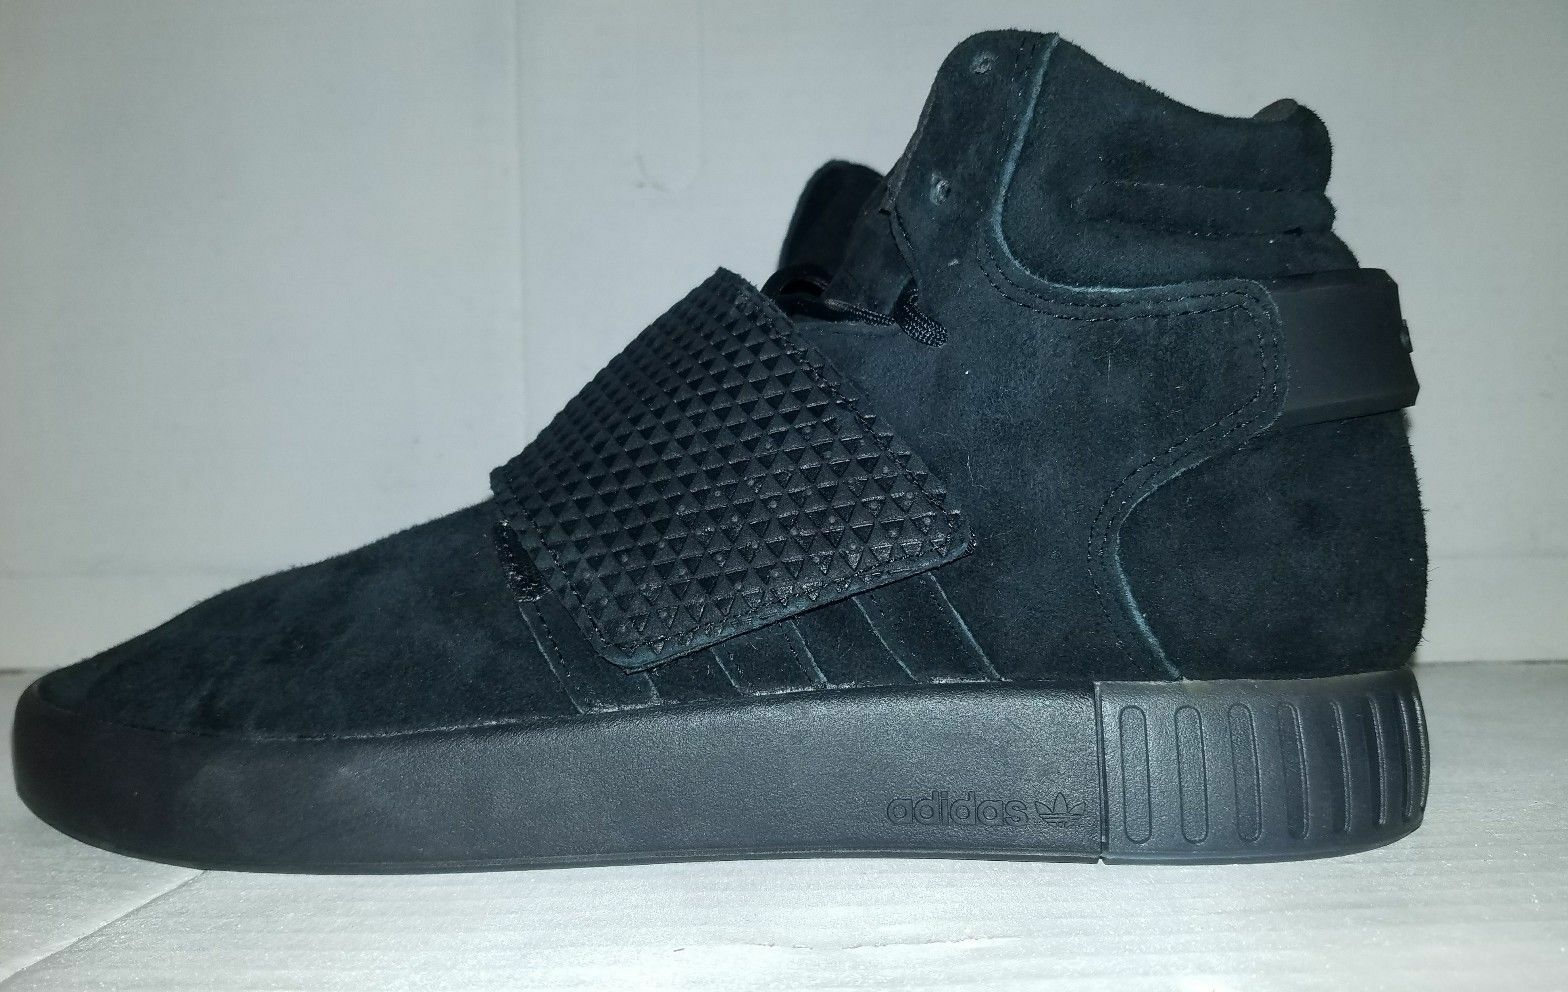 NEW ADIDAS TUBULAR PIRATE INVADER STRAP SHOES BB1169 TRIPLE BLACK PIRATE TUBULAR MENS 10.5 7f5a6f